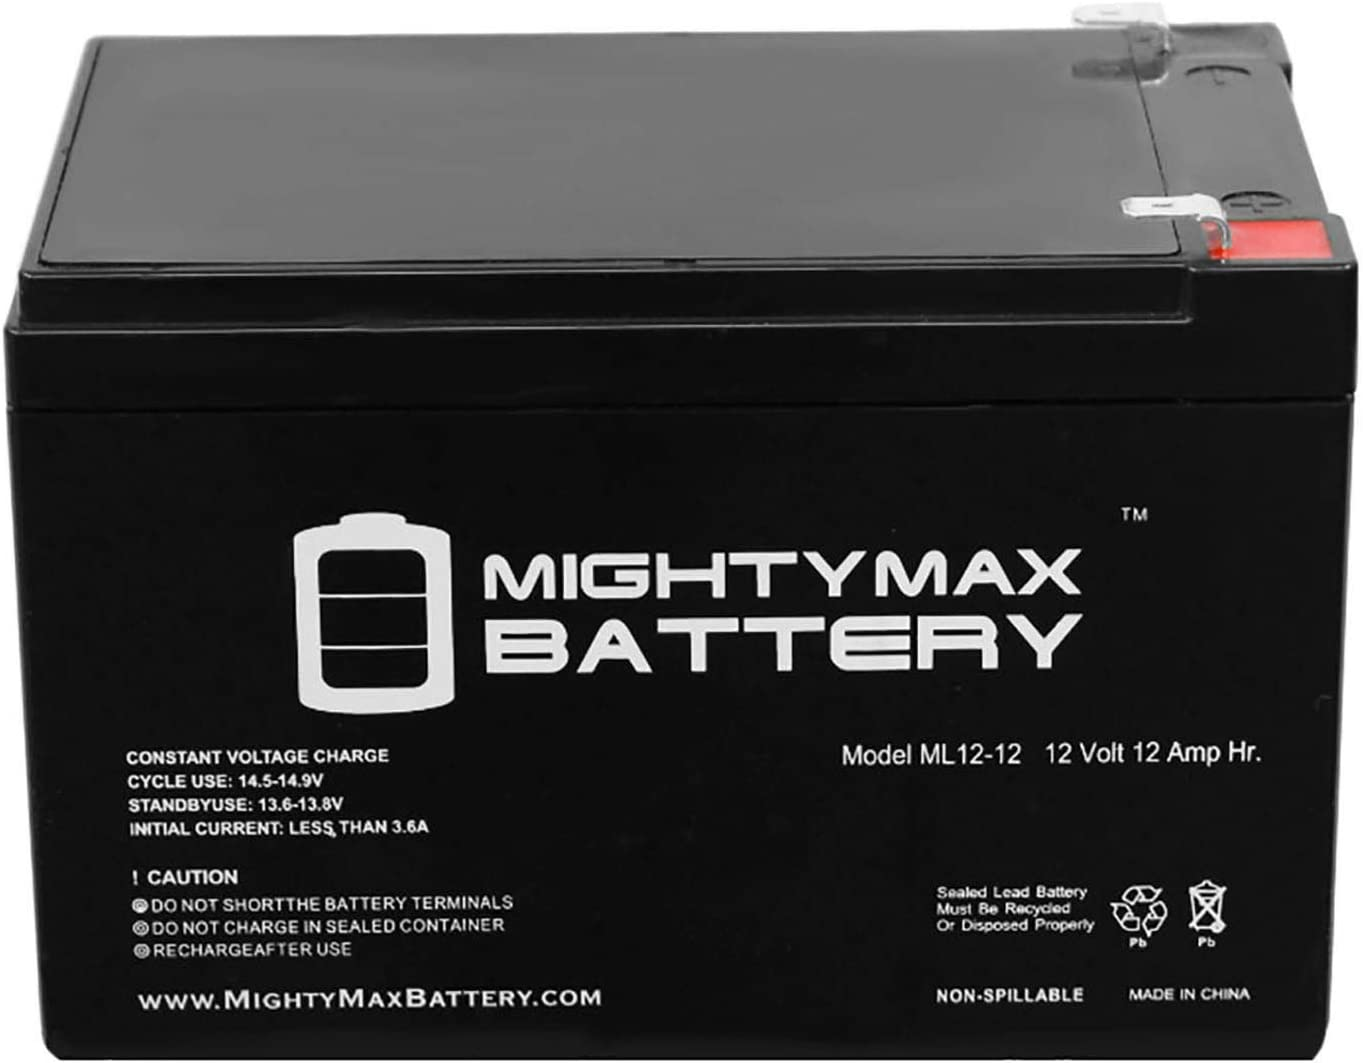 4 Pack Brand Product SUV650 Mighty Max Battery 12V 12Ah F2 Replaces APC Smart-UPS SU650VS SUVS650I